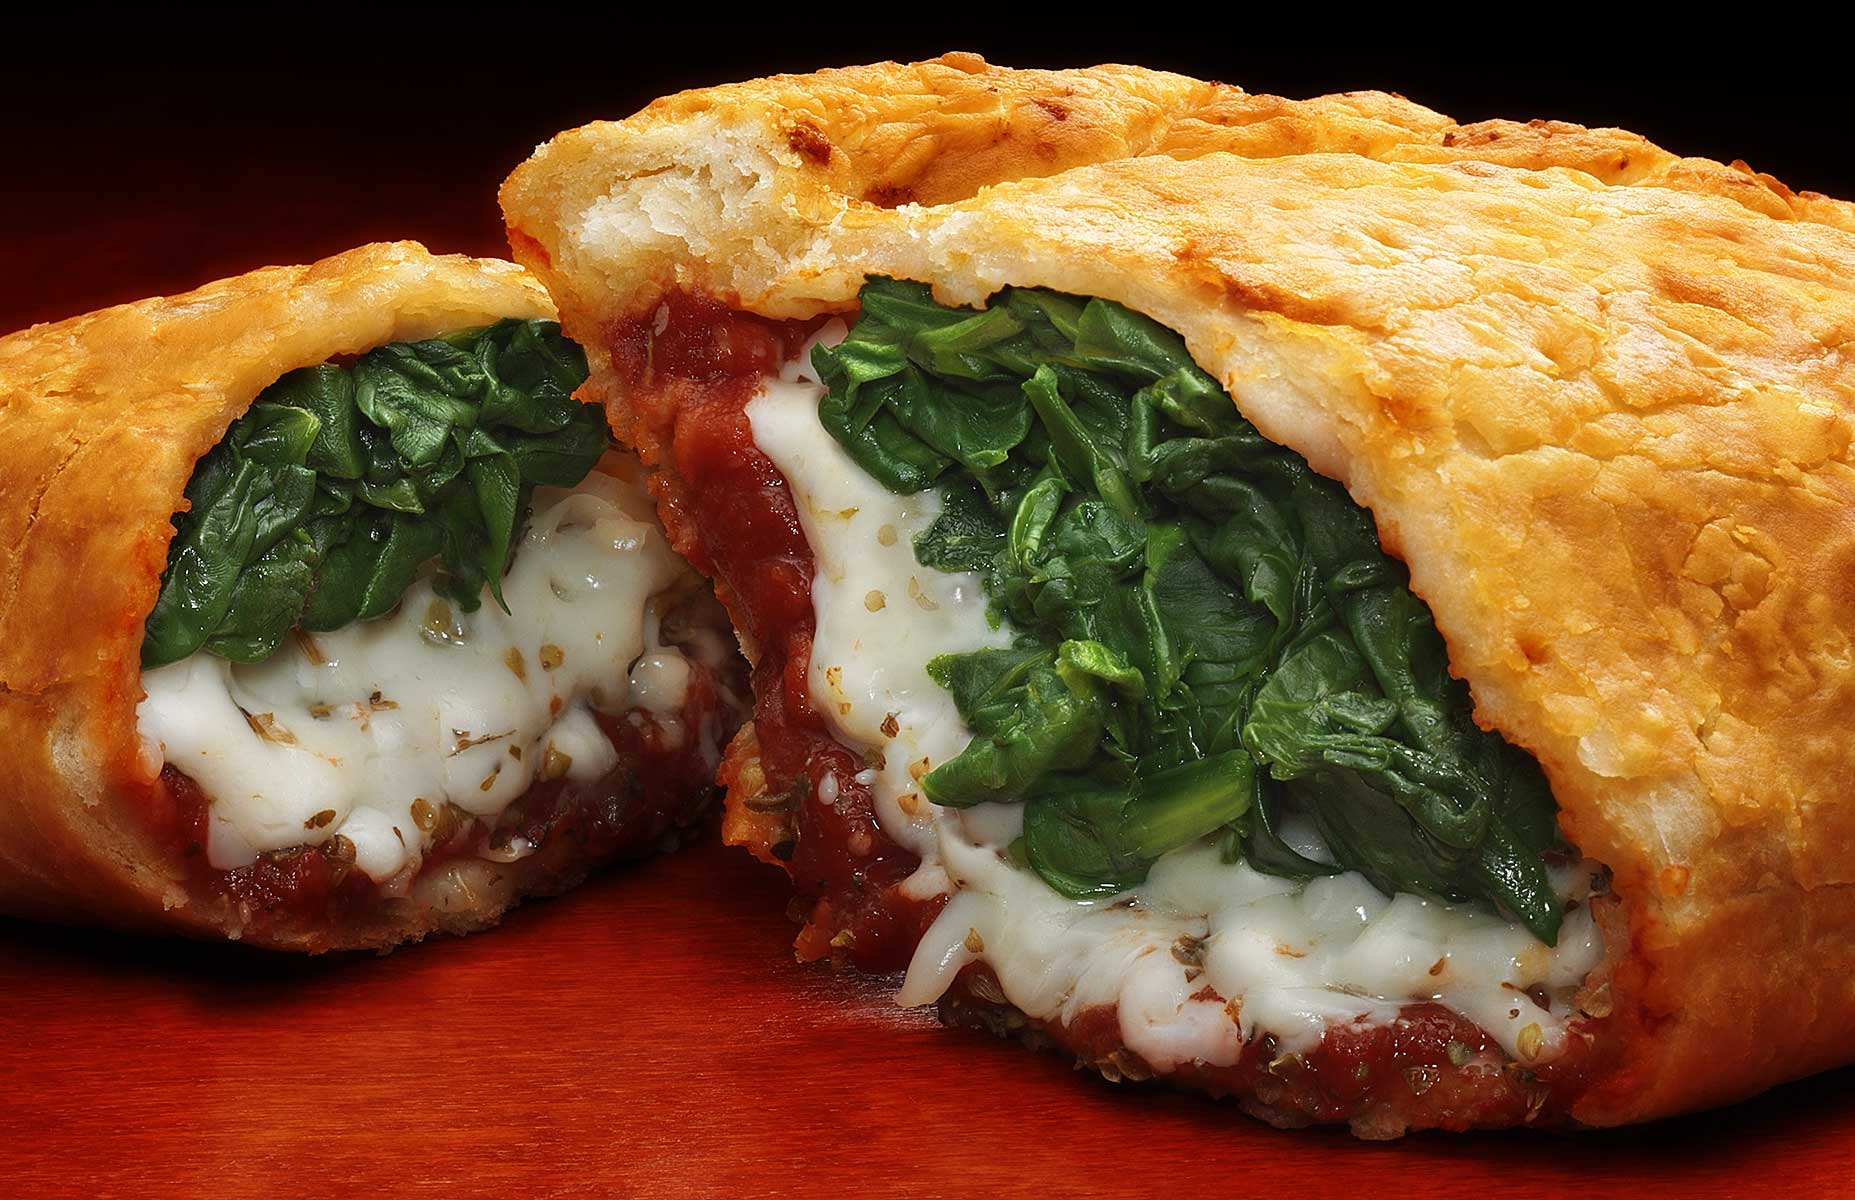 The low camera angle is directed at the opening of this cut Italian staple and gracefully stacked spinach style Calzone. It rests easily on a rich wood surface with the fresh marinara sauce and spinach layered with mozzarella in a crisp dough. This shot is in landscape orientation and is softly lit from back and above with additional light for the interior of the subject. The rich green of spinach, white of mozzarella and rich red of sauce are beautifully framed by the yellows and browns of the freshly baked crust all on a reddish wood surface.